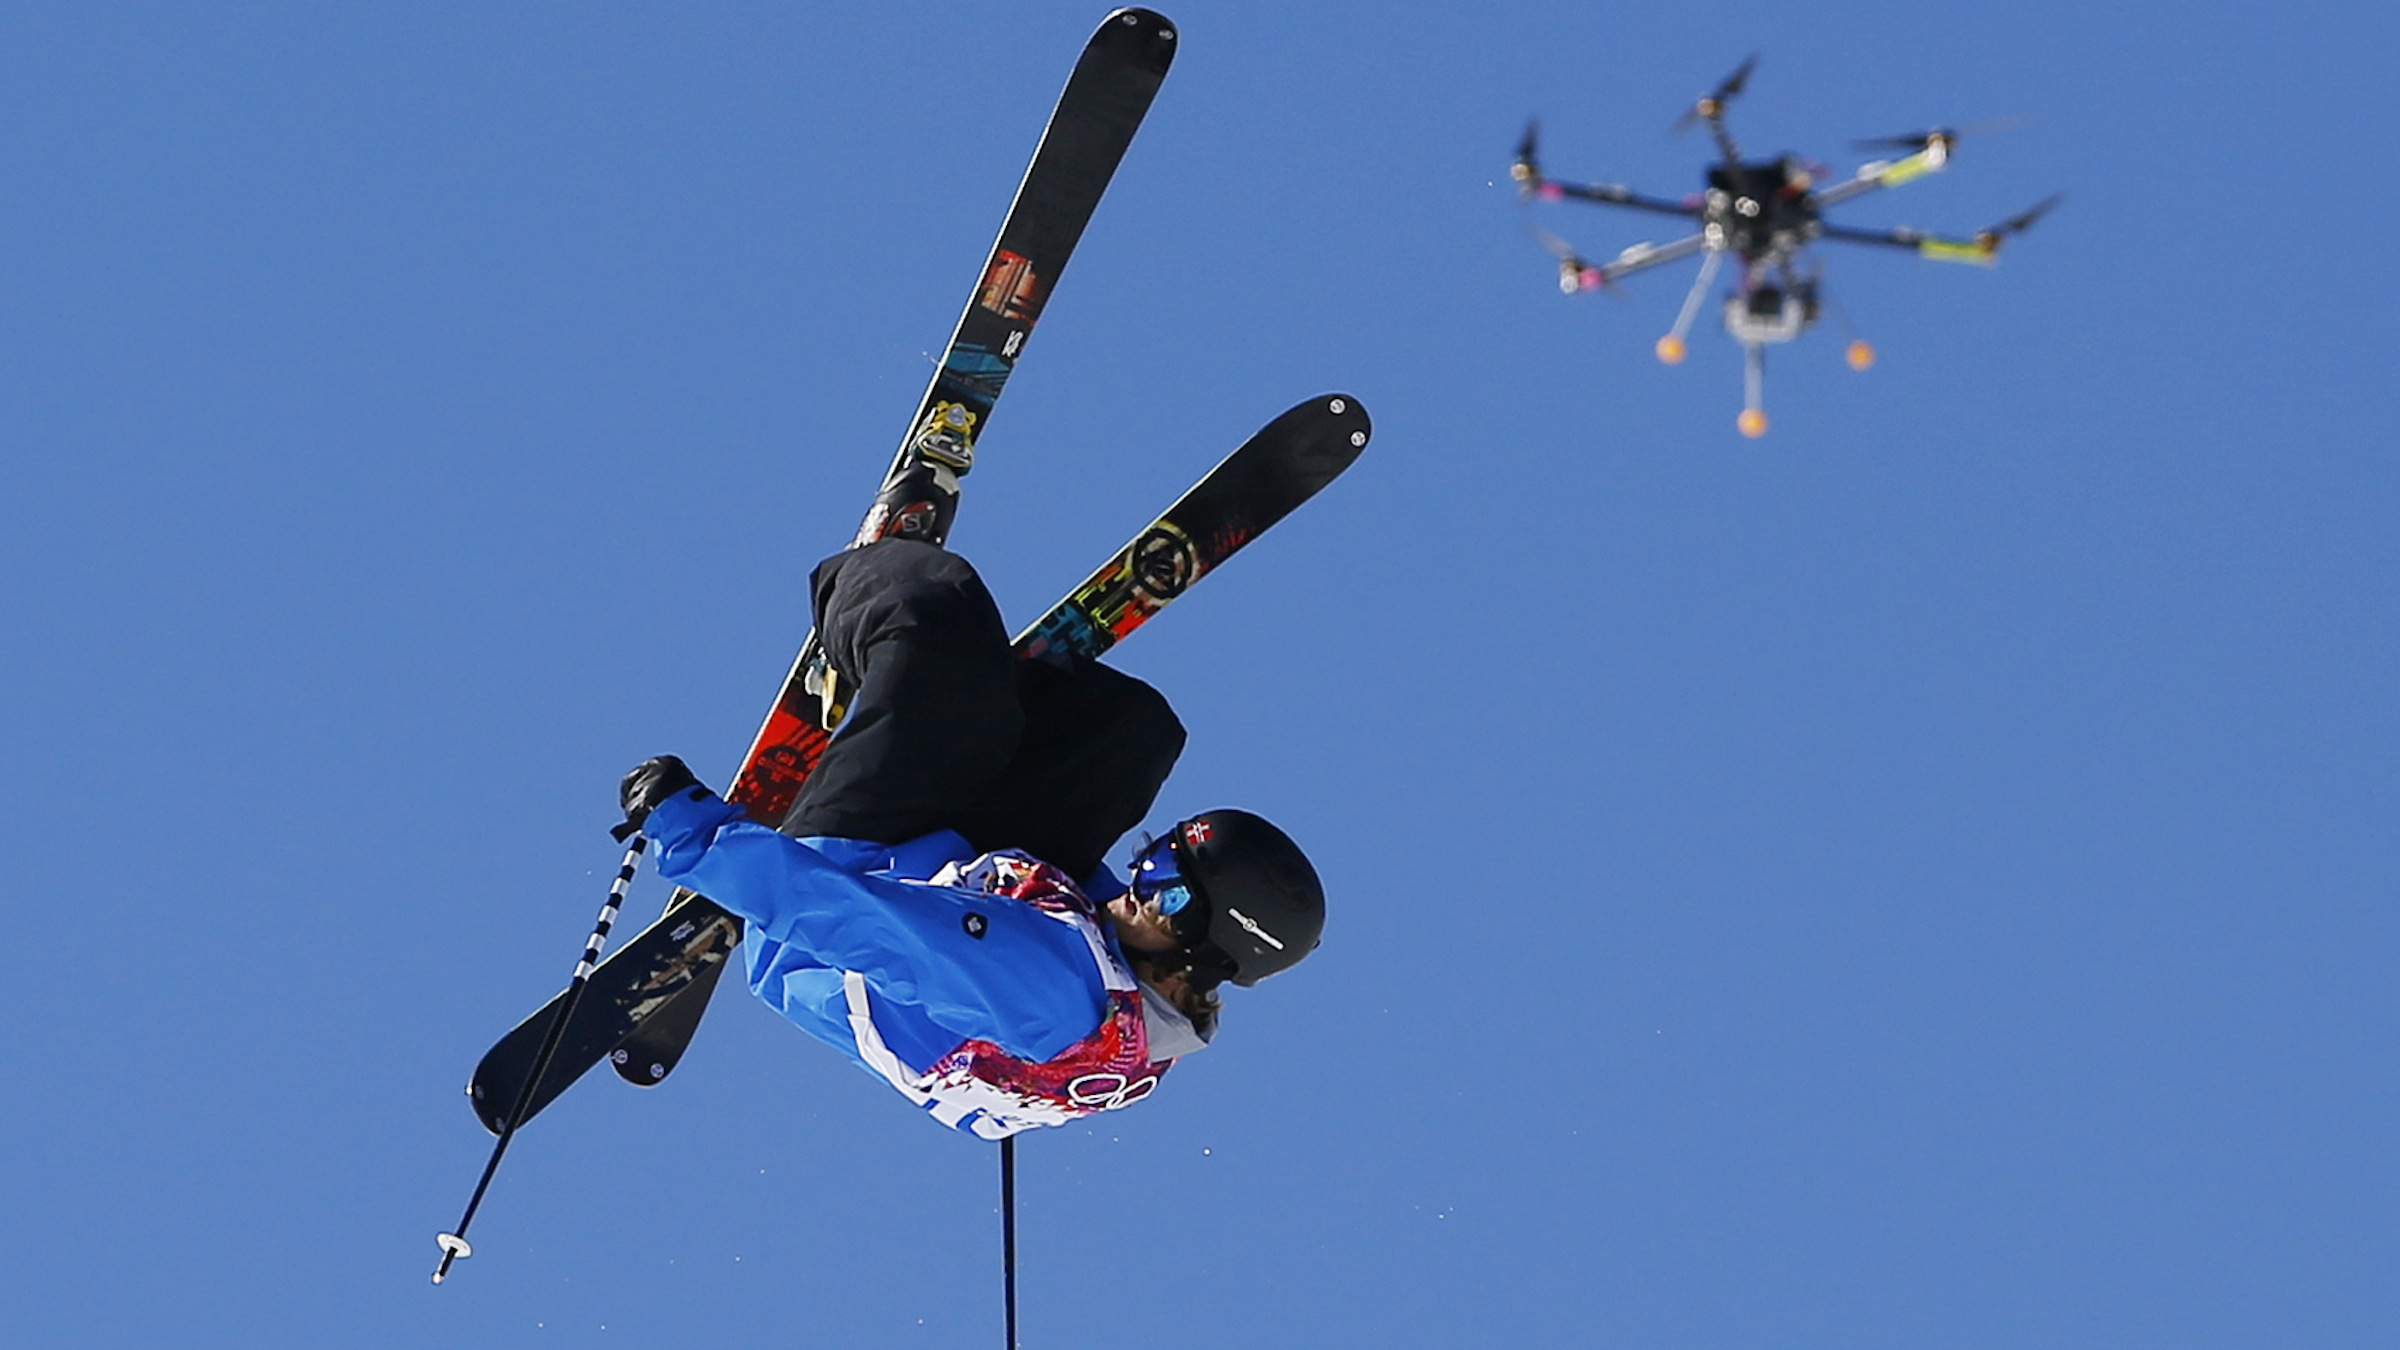 A drone camera follows Norway's Aleksander Aurdal during the men's ski slopestyle final at the Rosa Khutor Extreme Park, at the 2014 Winter Olympics, Thursday, Feb. 13, 2014, in Krasnaya Polyana, Russia. (AP Photo/Sergei Grits)